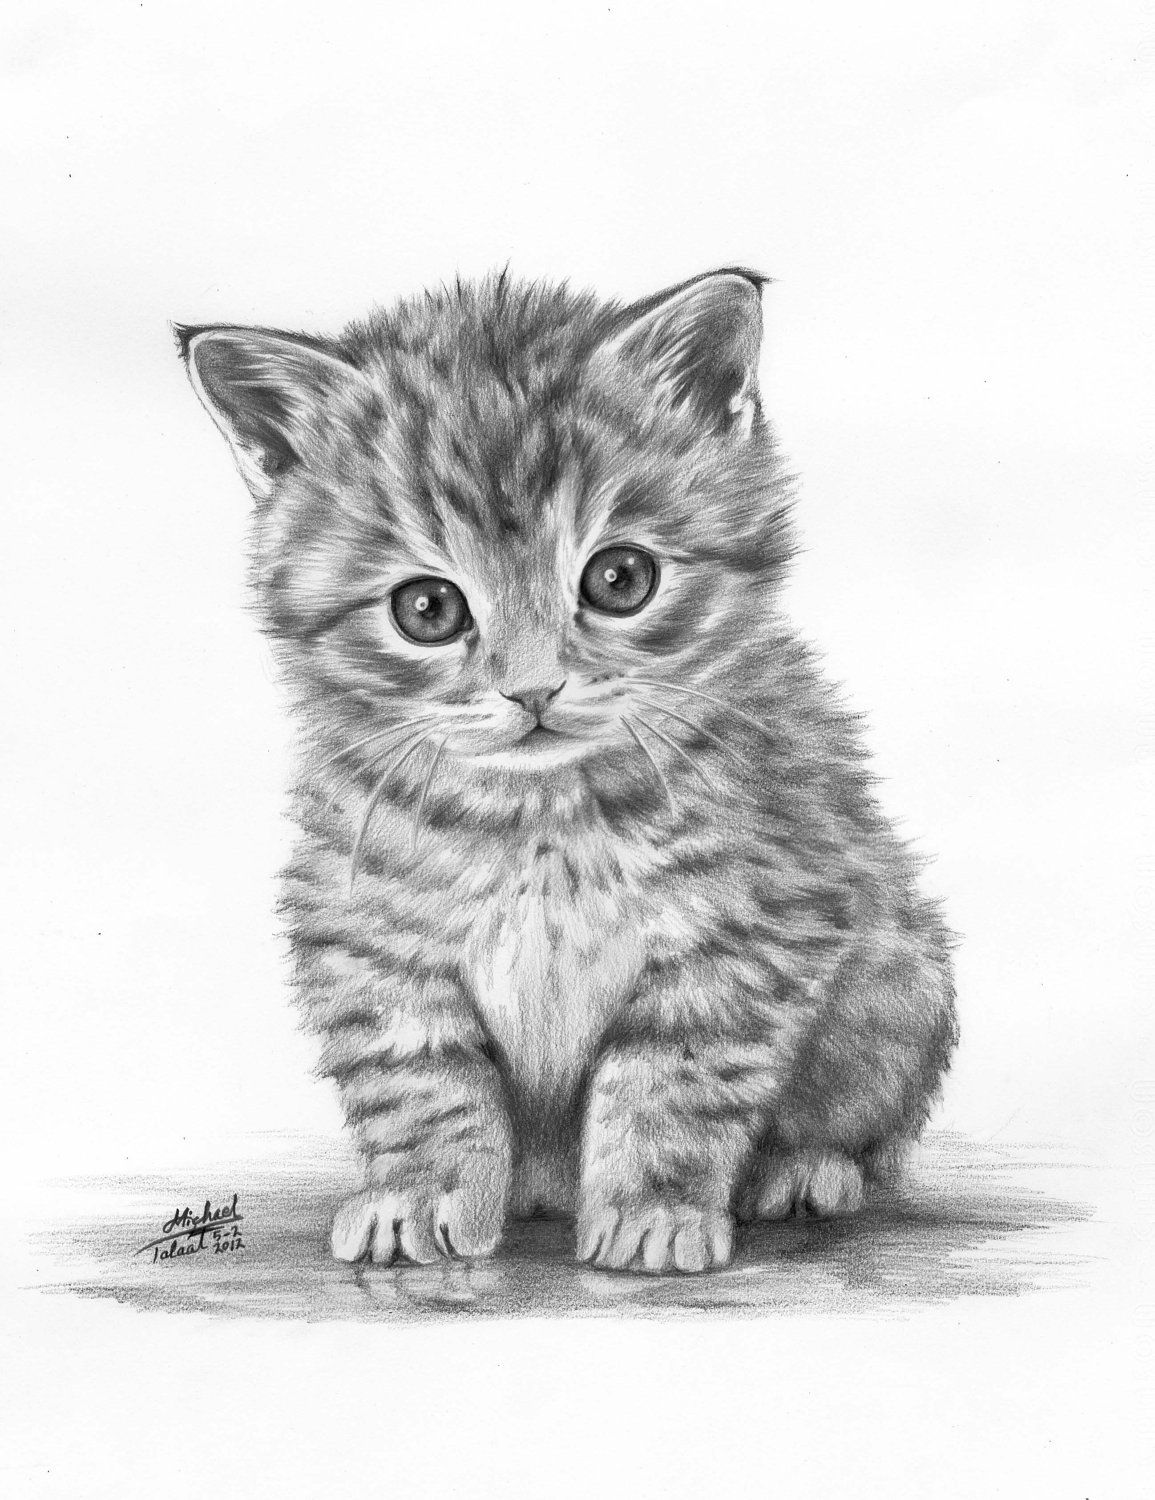 Animals Drawings 100 00 Via Etsy Animal Drawings Kitten Drawing Cat Art